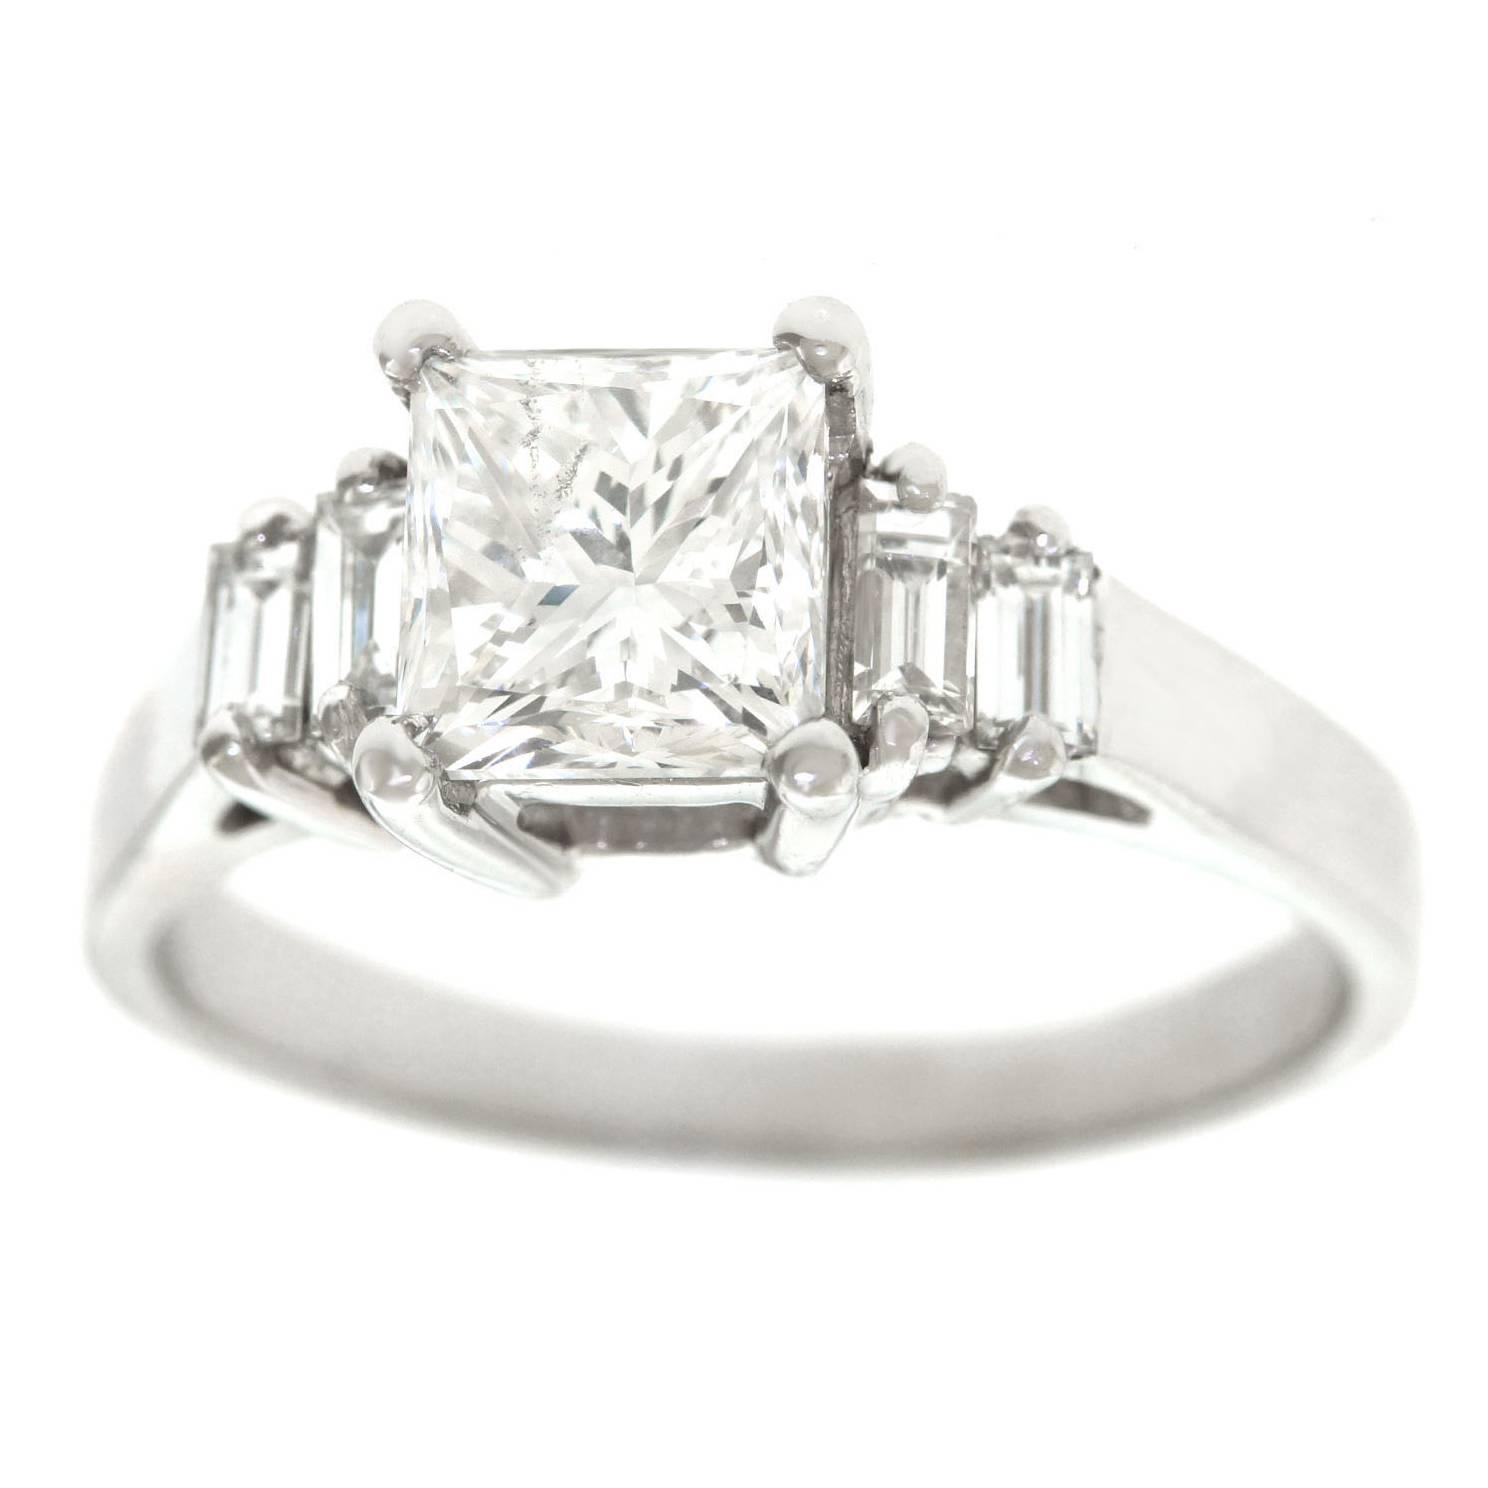 design princess twist jewellery diamonds solitaire rings cut aurus ring style dsc engagement bespoke blog diamond